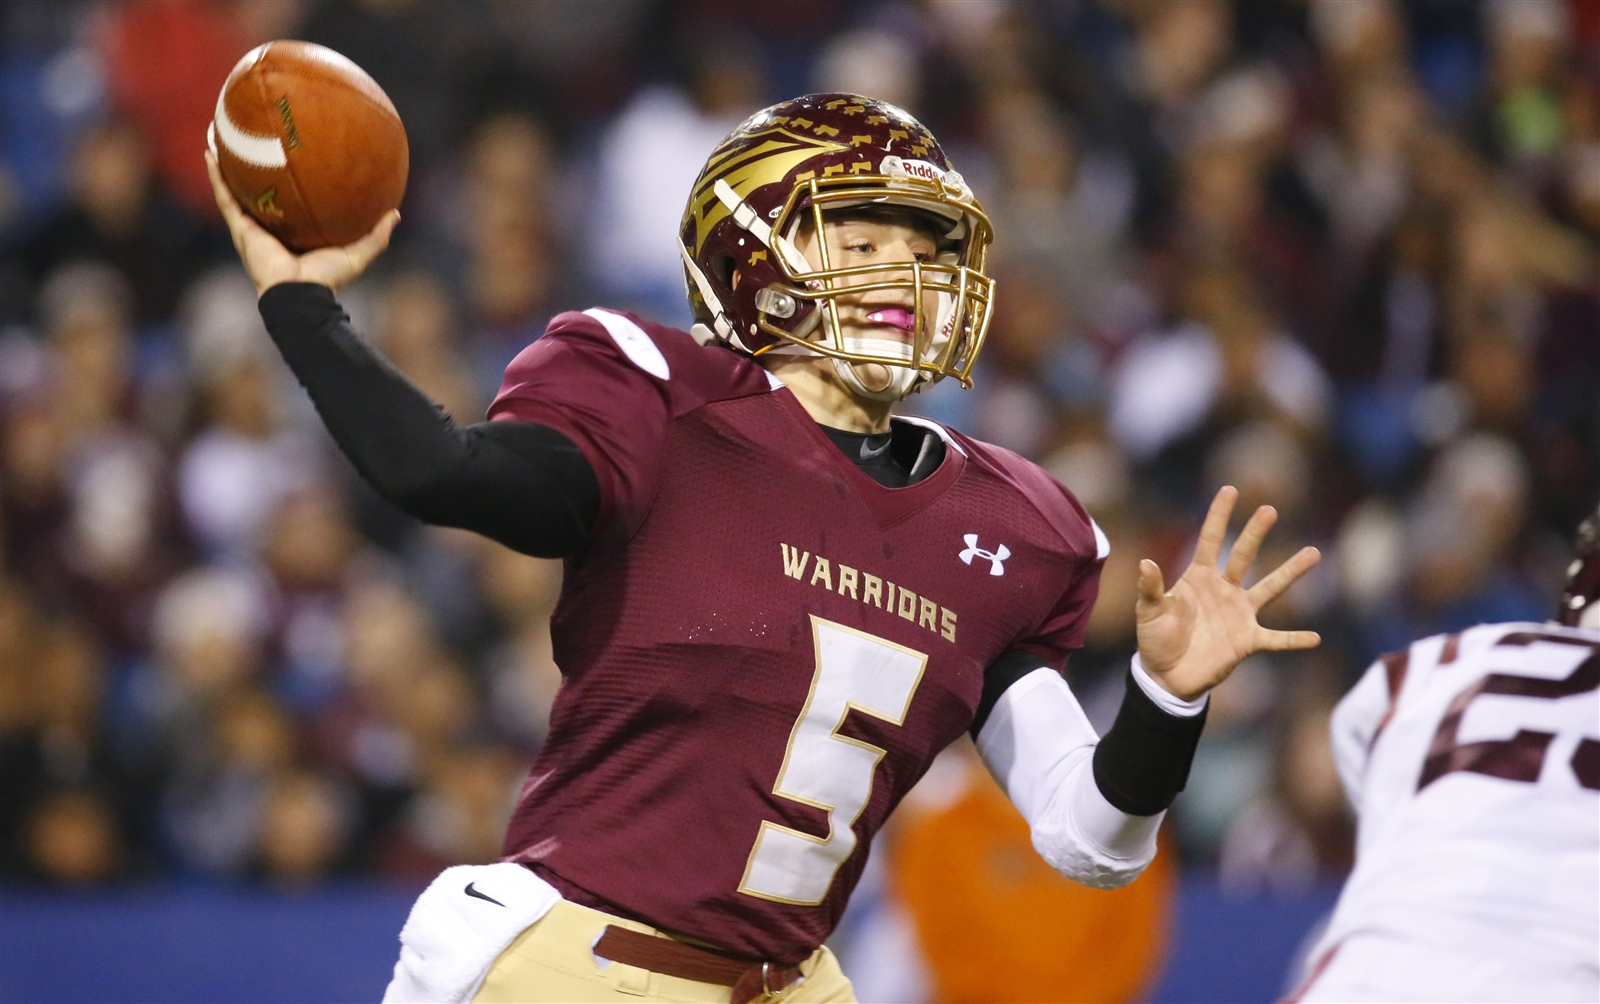 Cheektowaga quarterback Eric Bartnik throws against Dunkirk during first half action of the Section VI Class B Final at New Era Field on Saturday, Nov. 5, 2016.